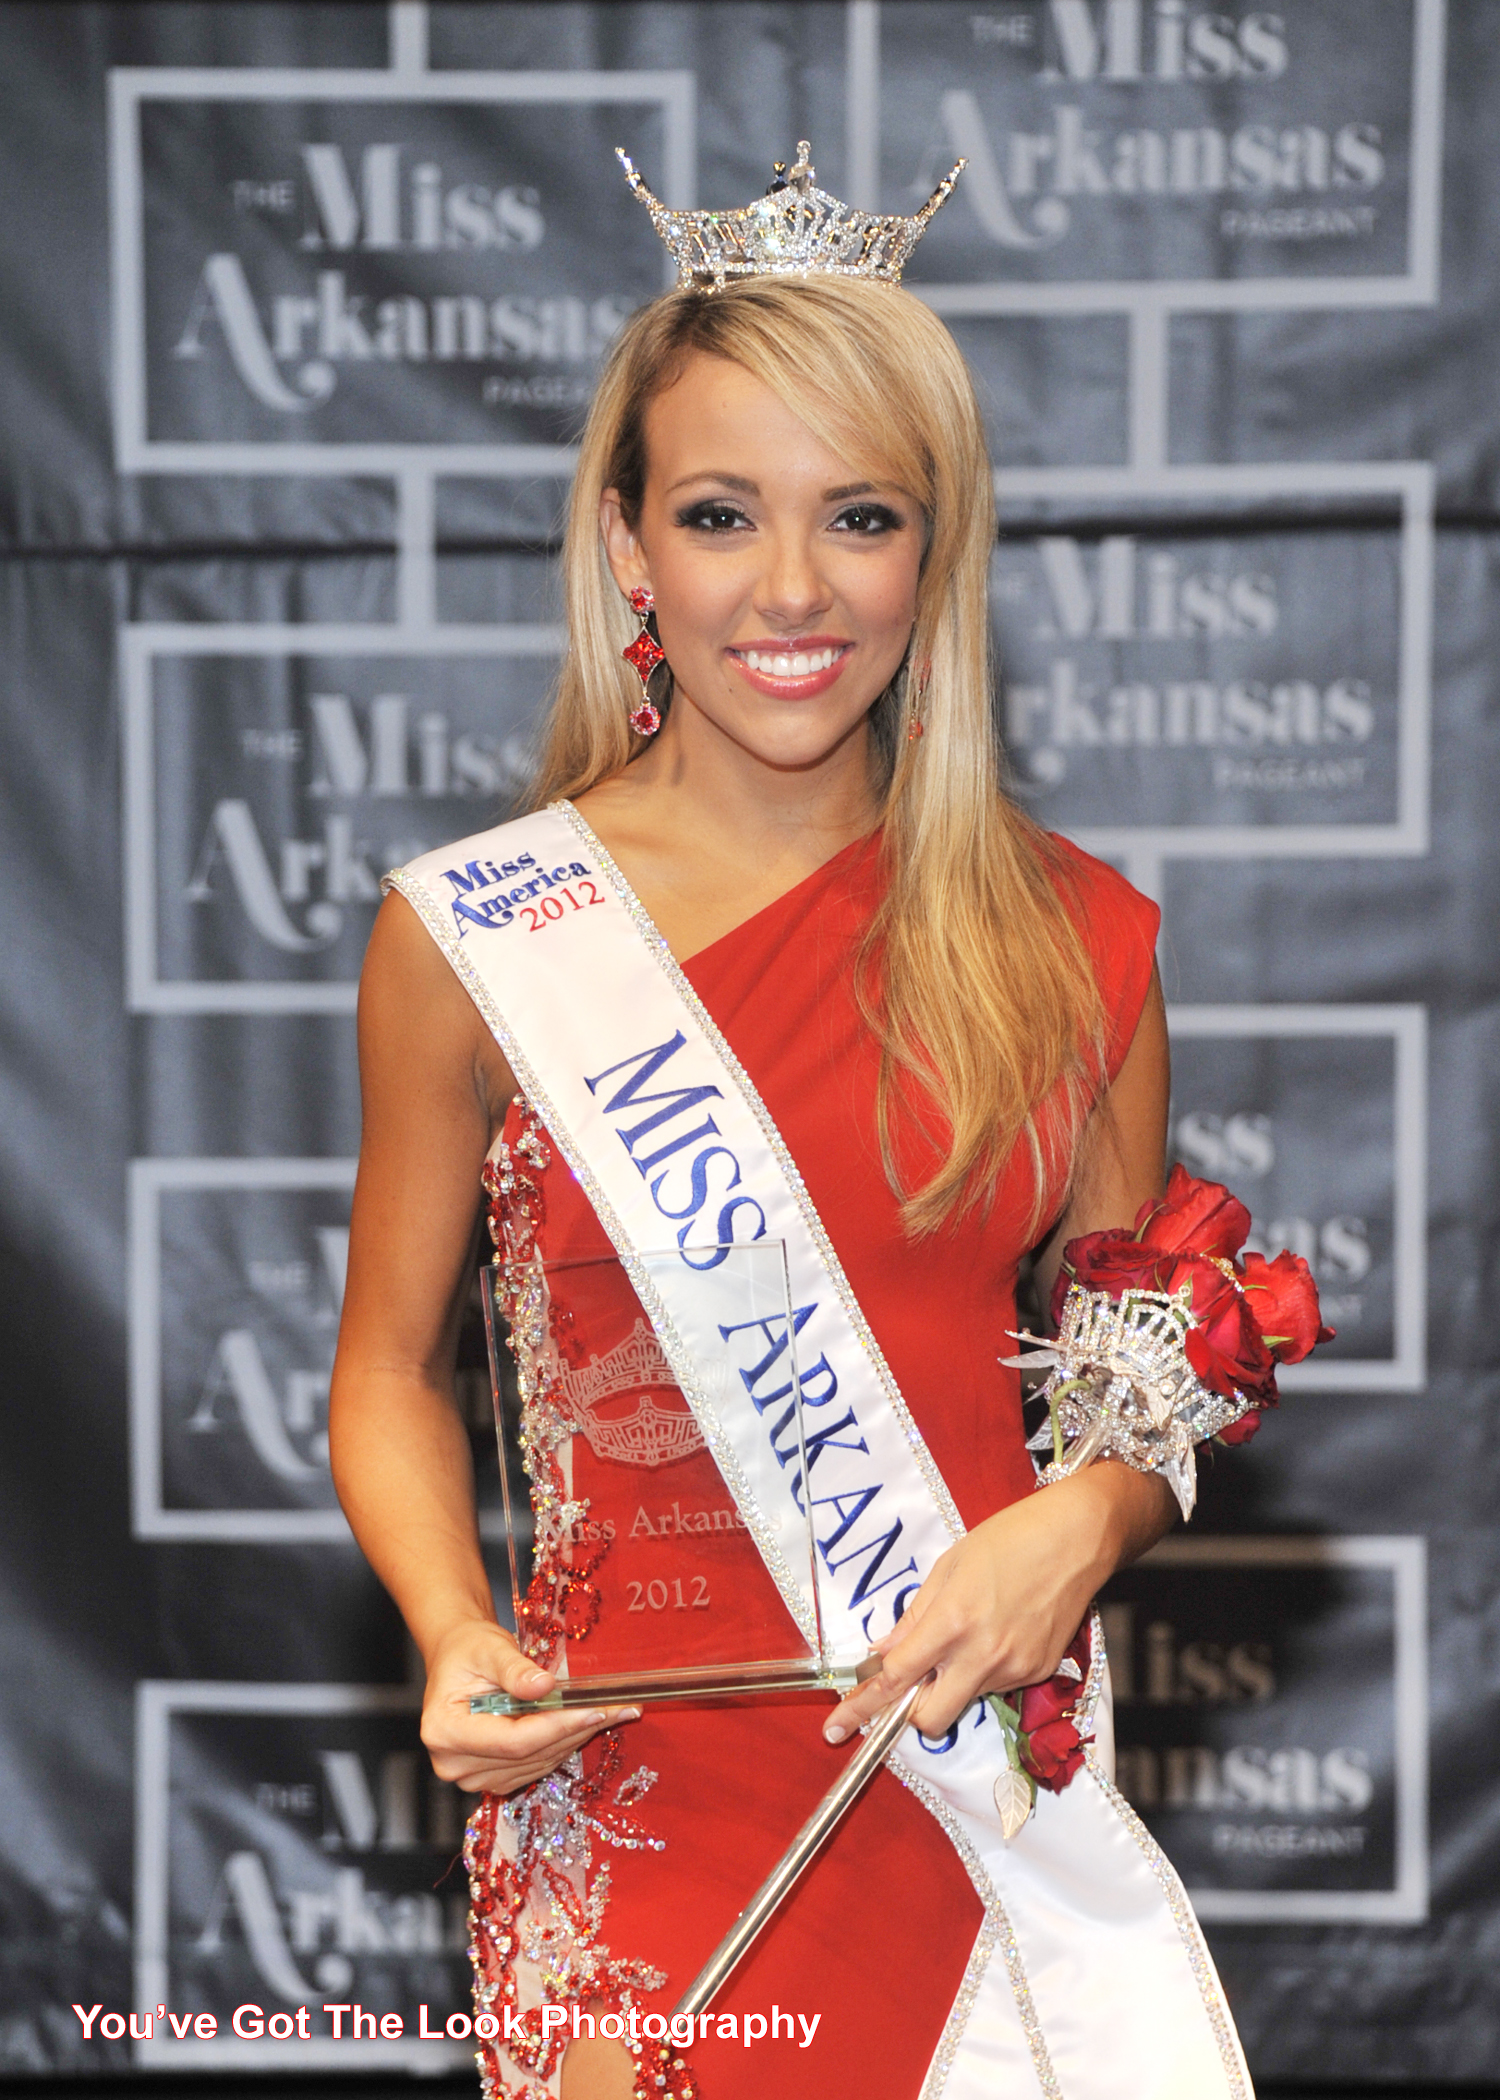 Sloane Roberts Crowned Miss Arkansas 2012